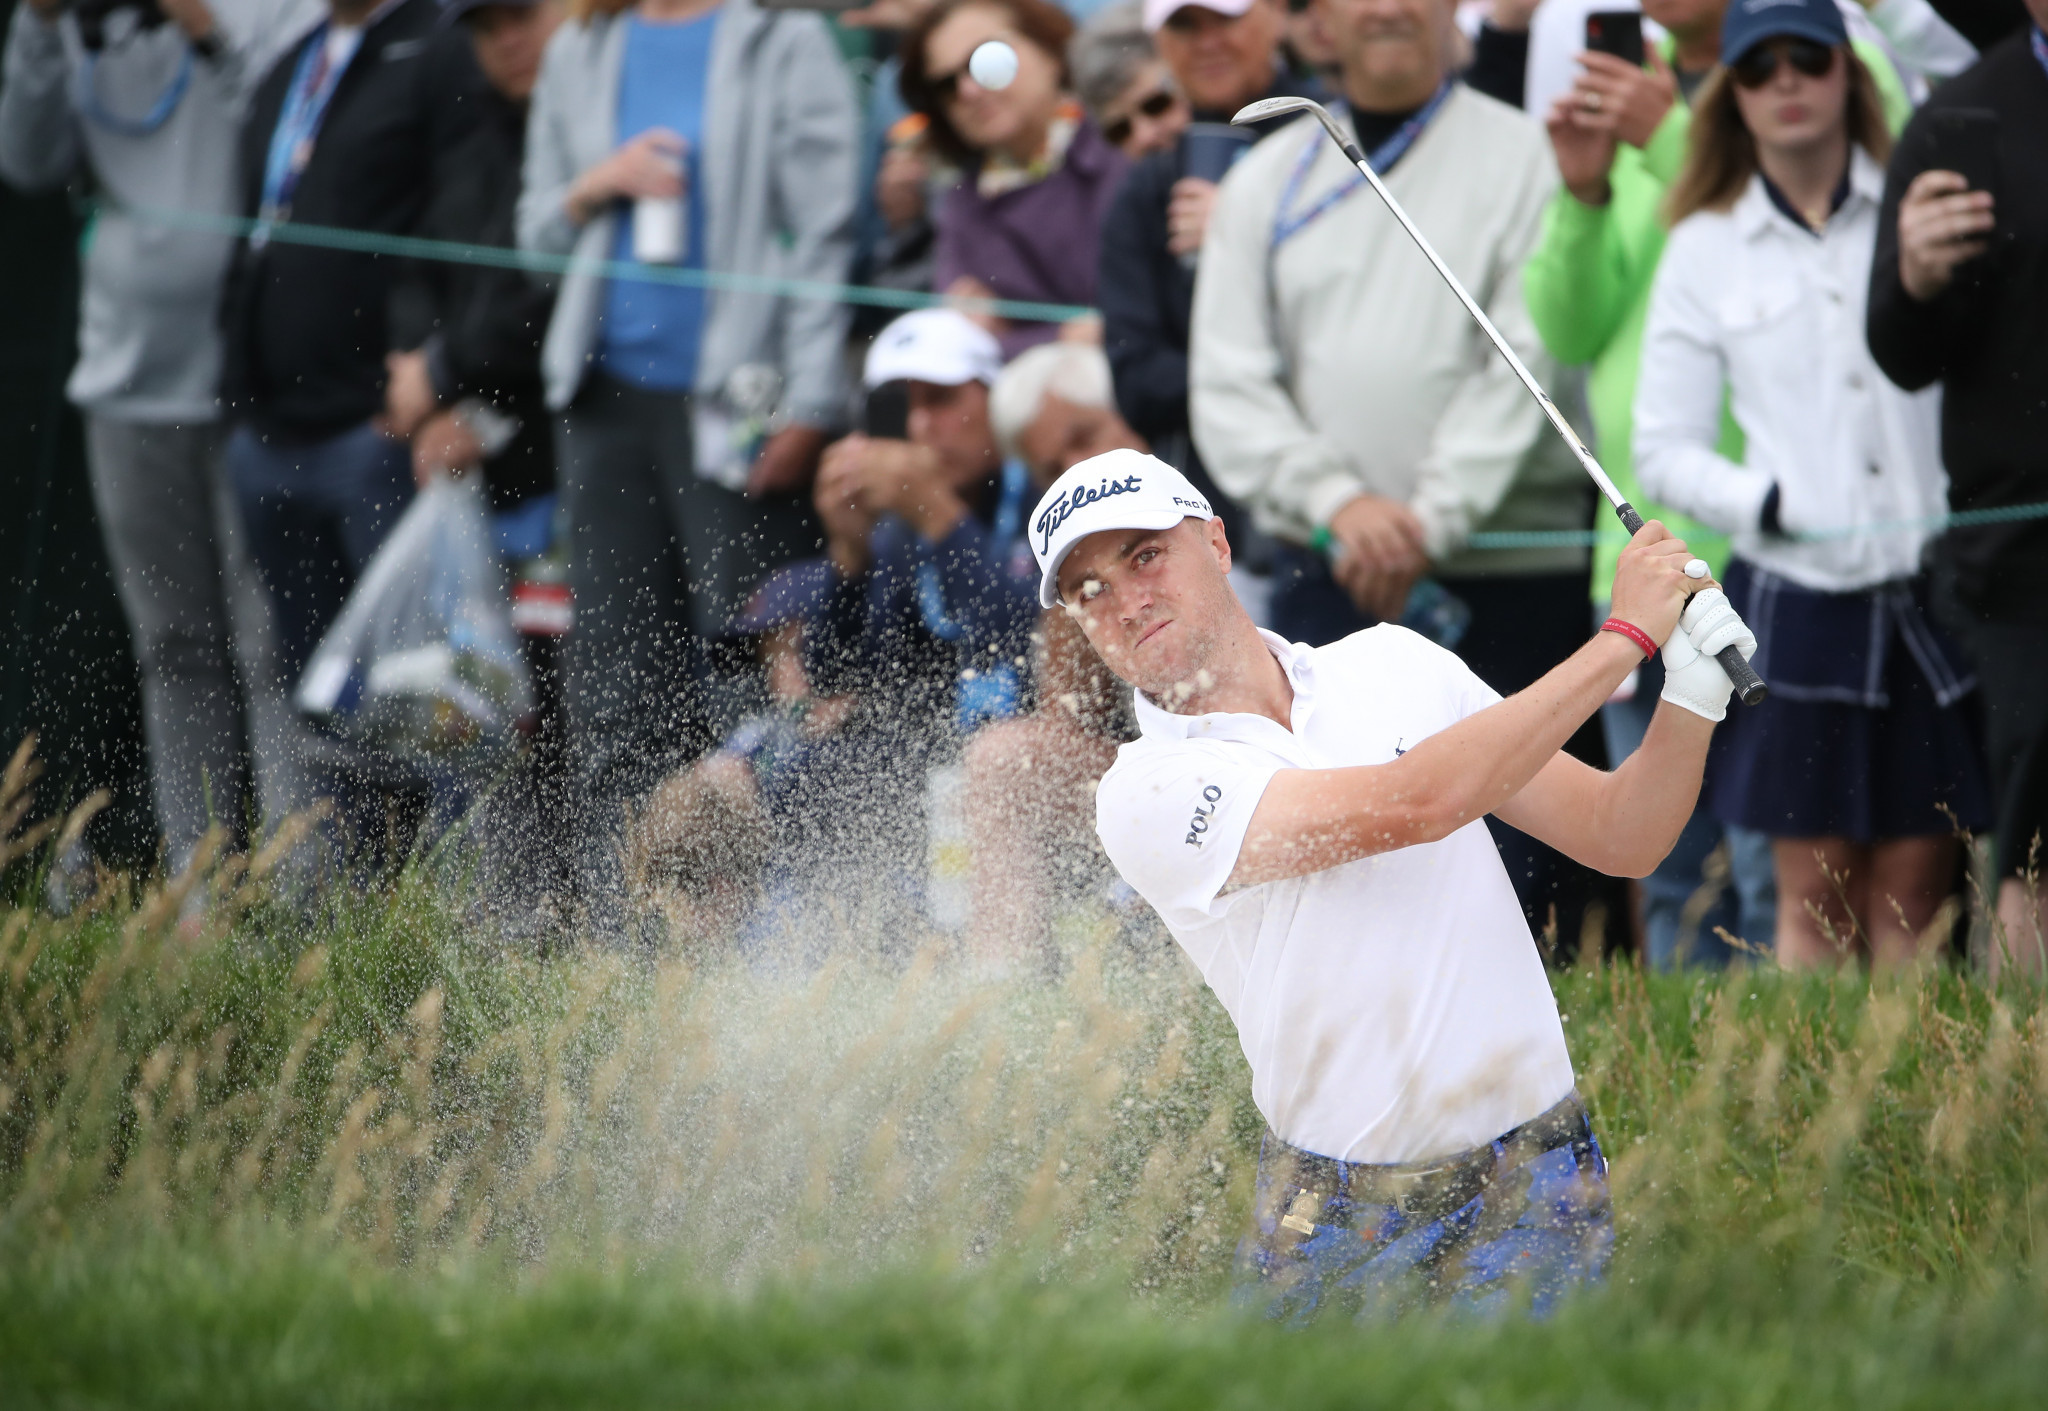 Justin Thomas of the United States plays a bunker shot at Pebble Beach Golf Links ©Getty Images